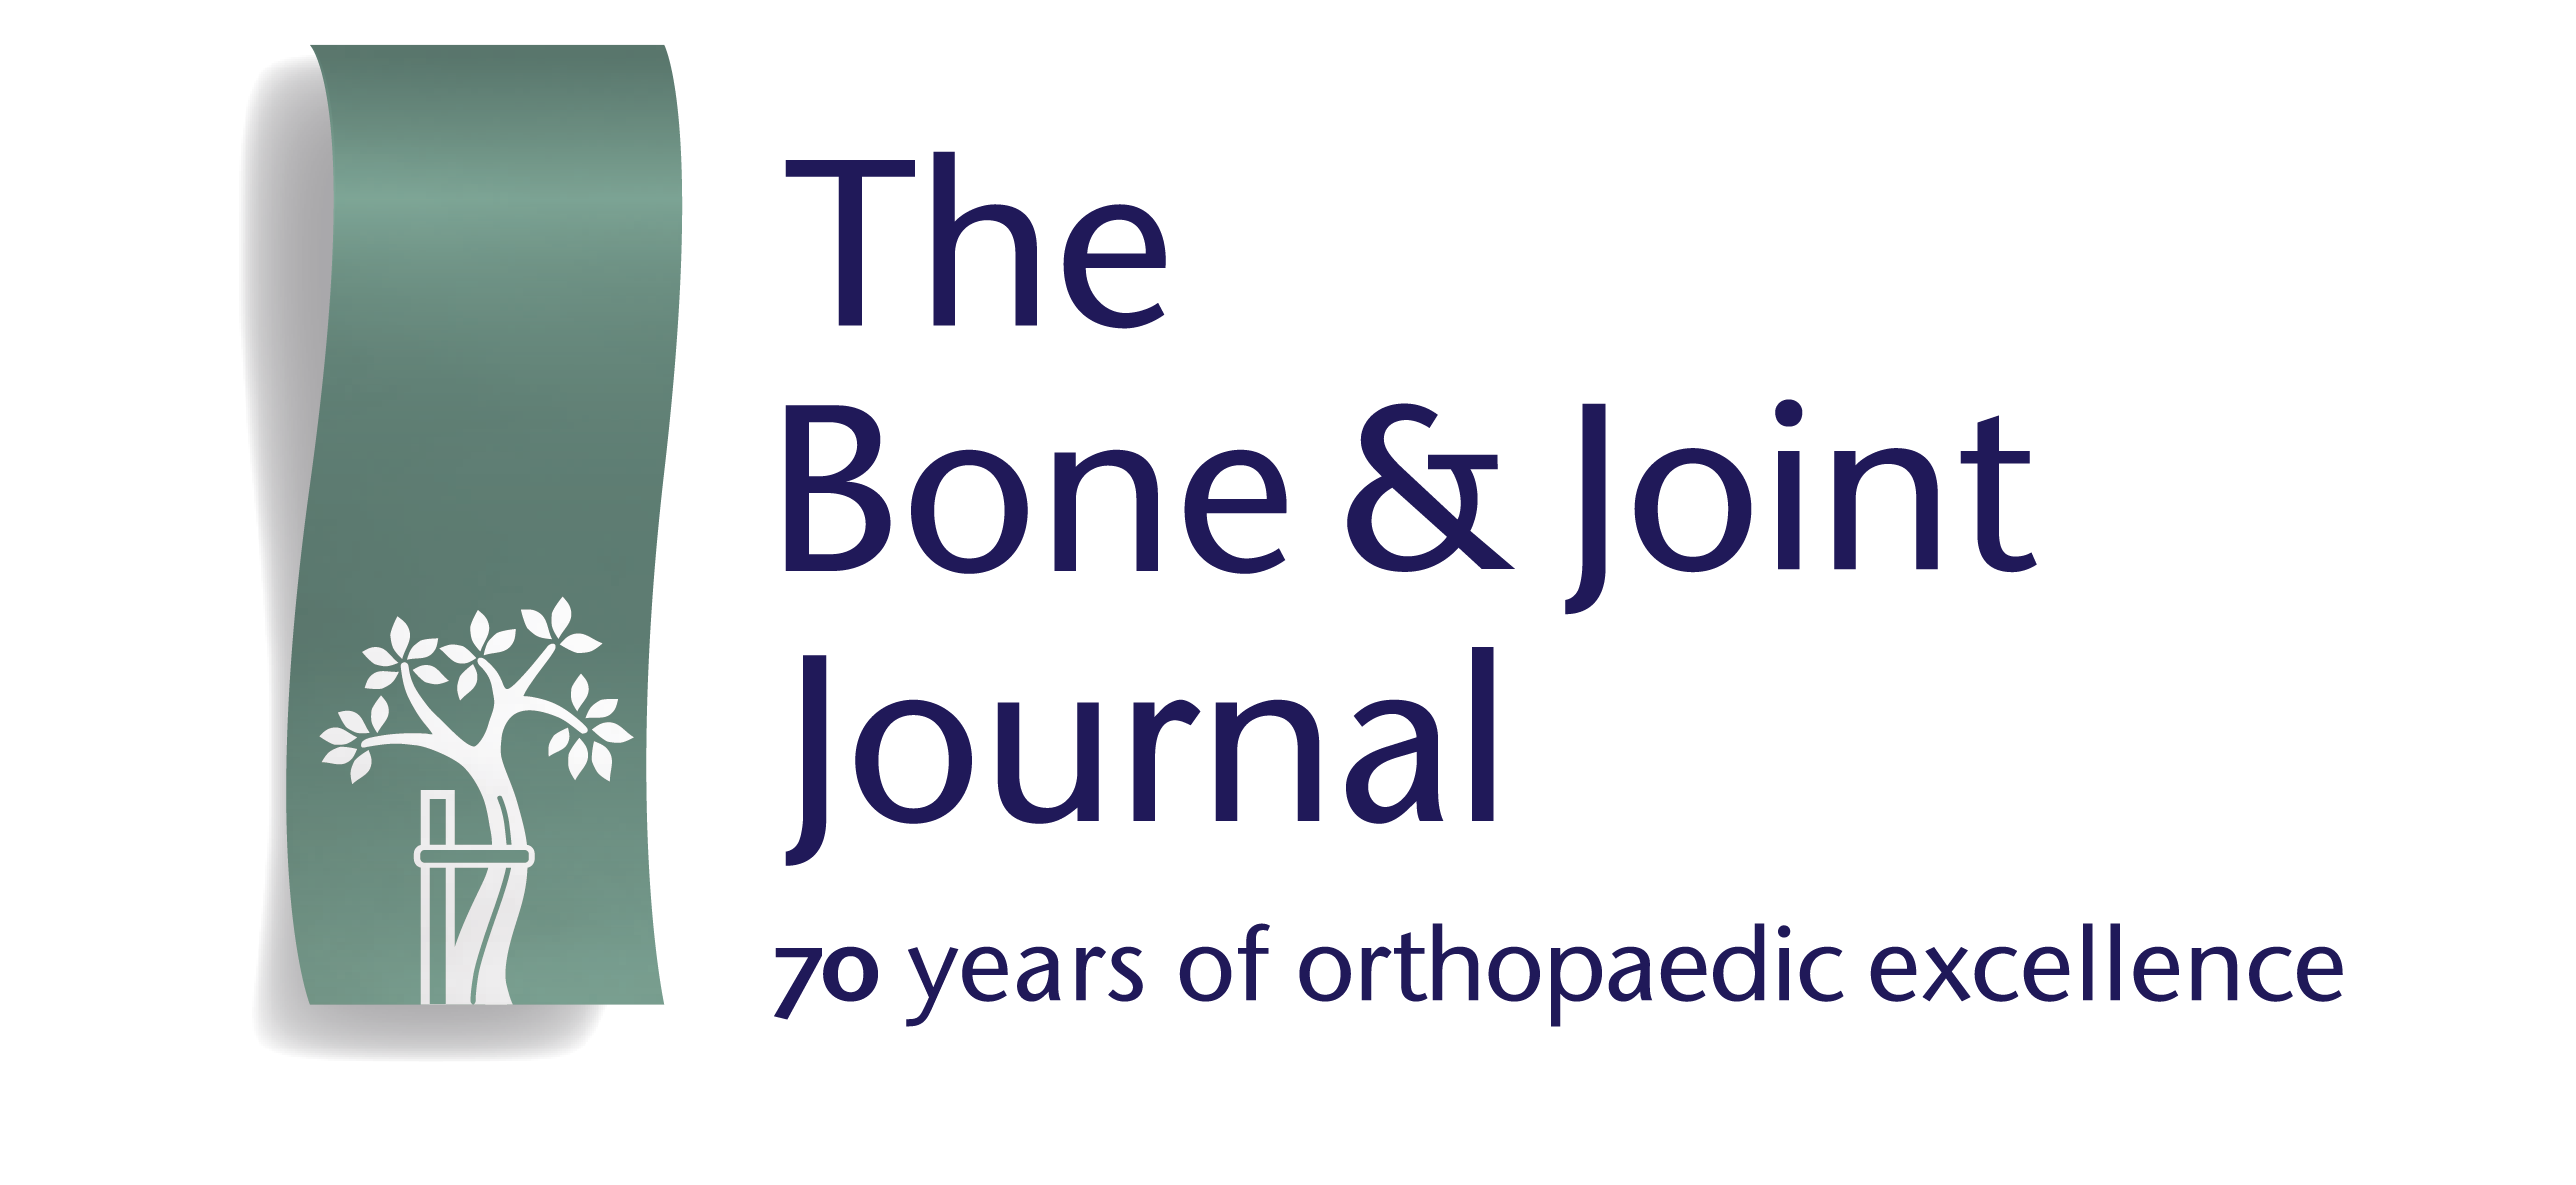 The Bone & Joint Journal